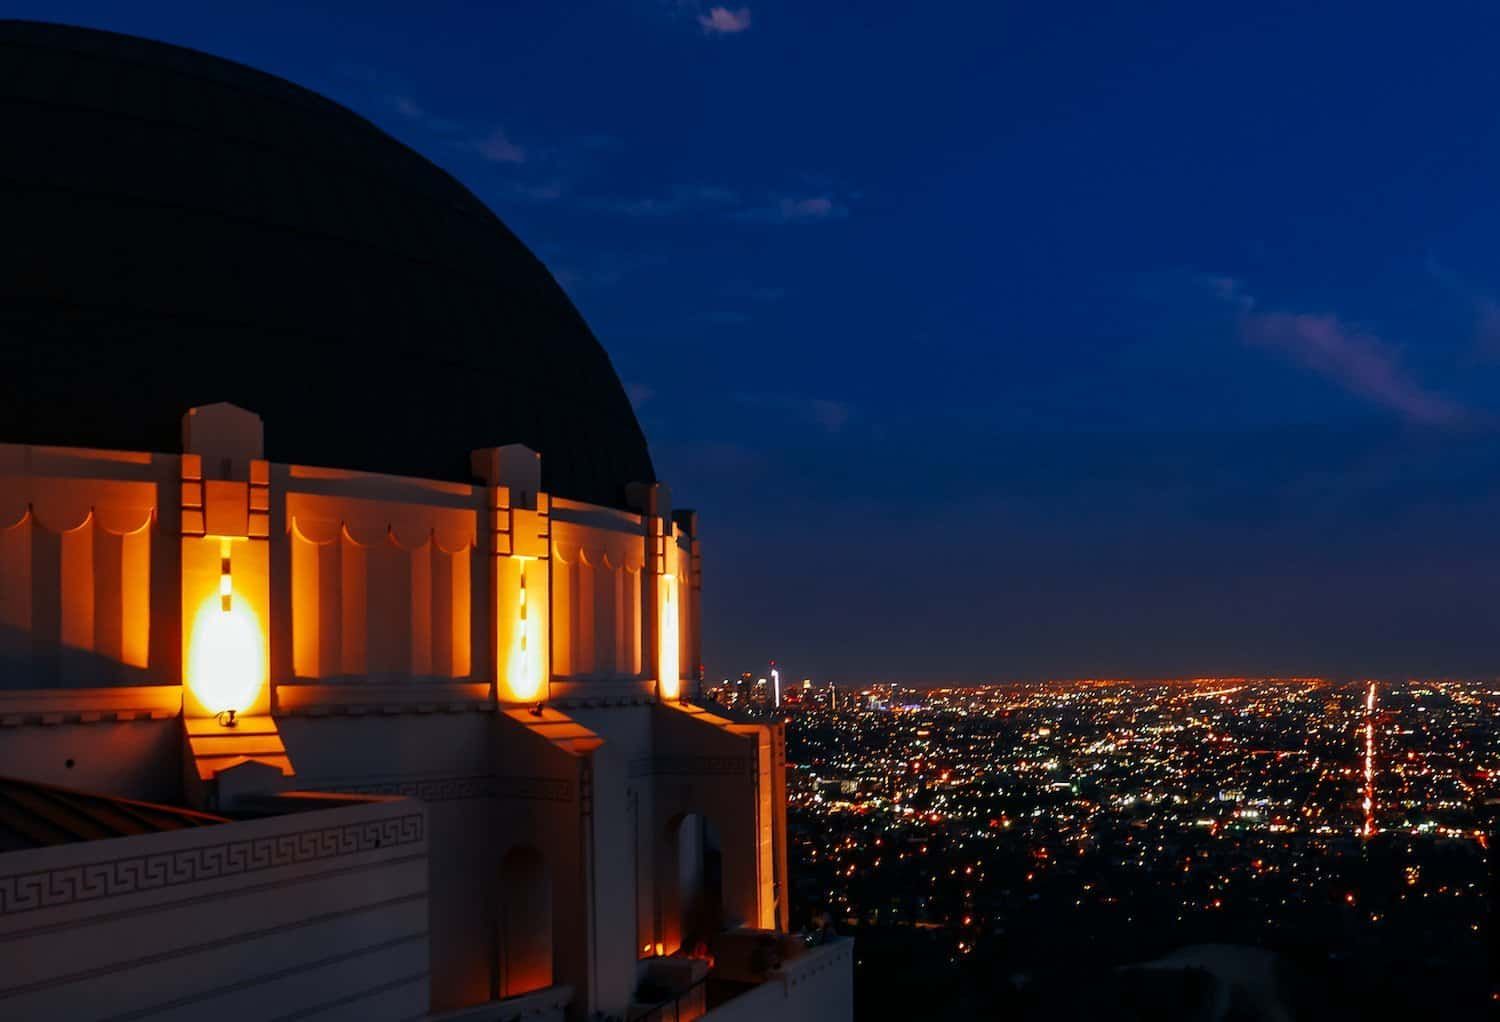 Stargazing in Los Angeles: Griffith Observatory by Dave Sizer